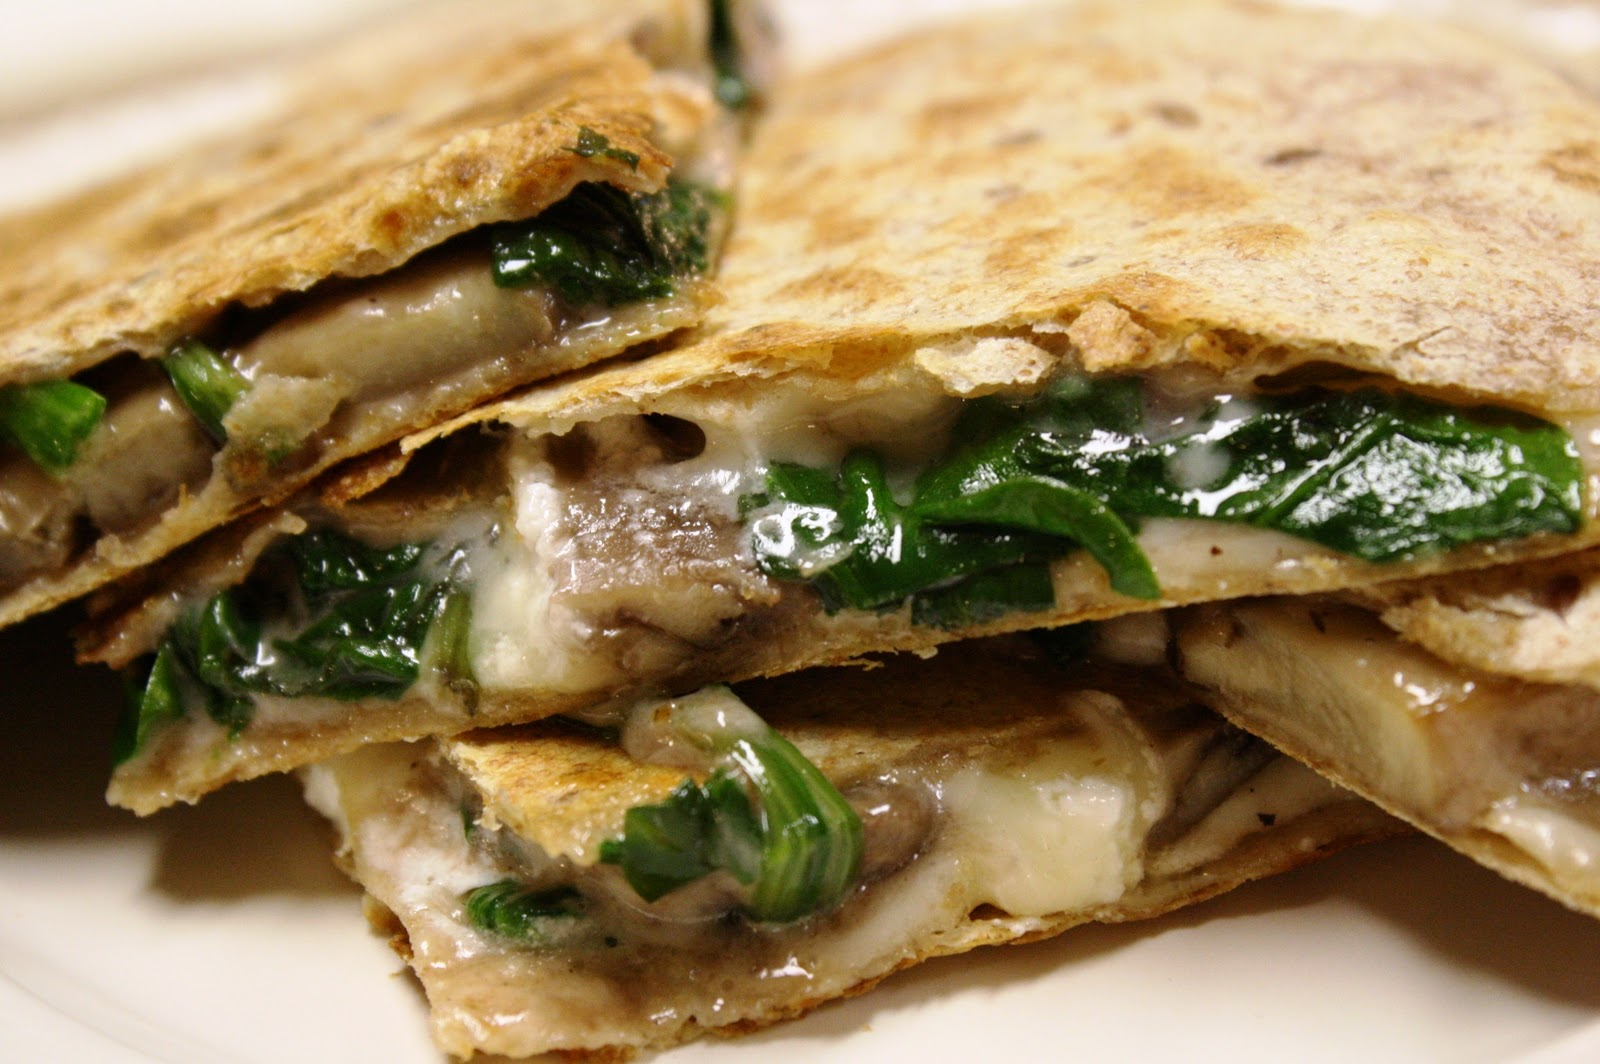 Spinach and mushroom Quesadillas with Fontina and goat cheese